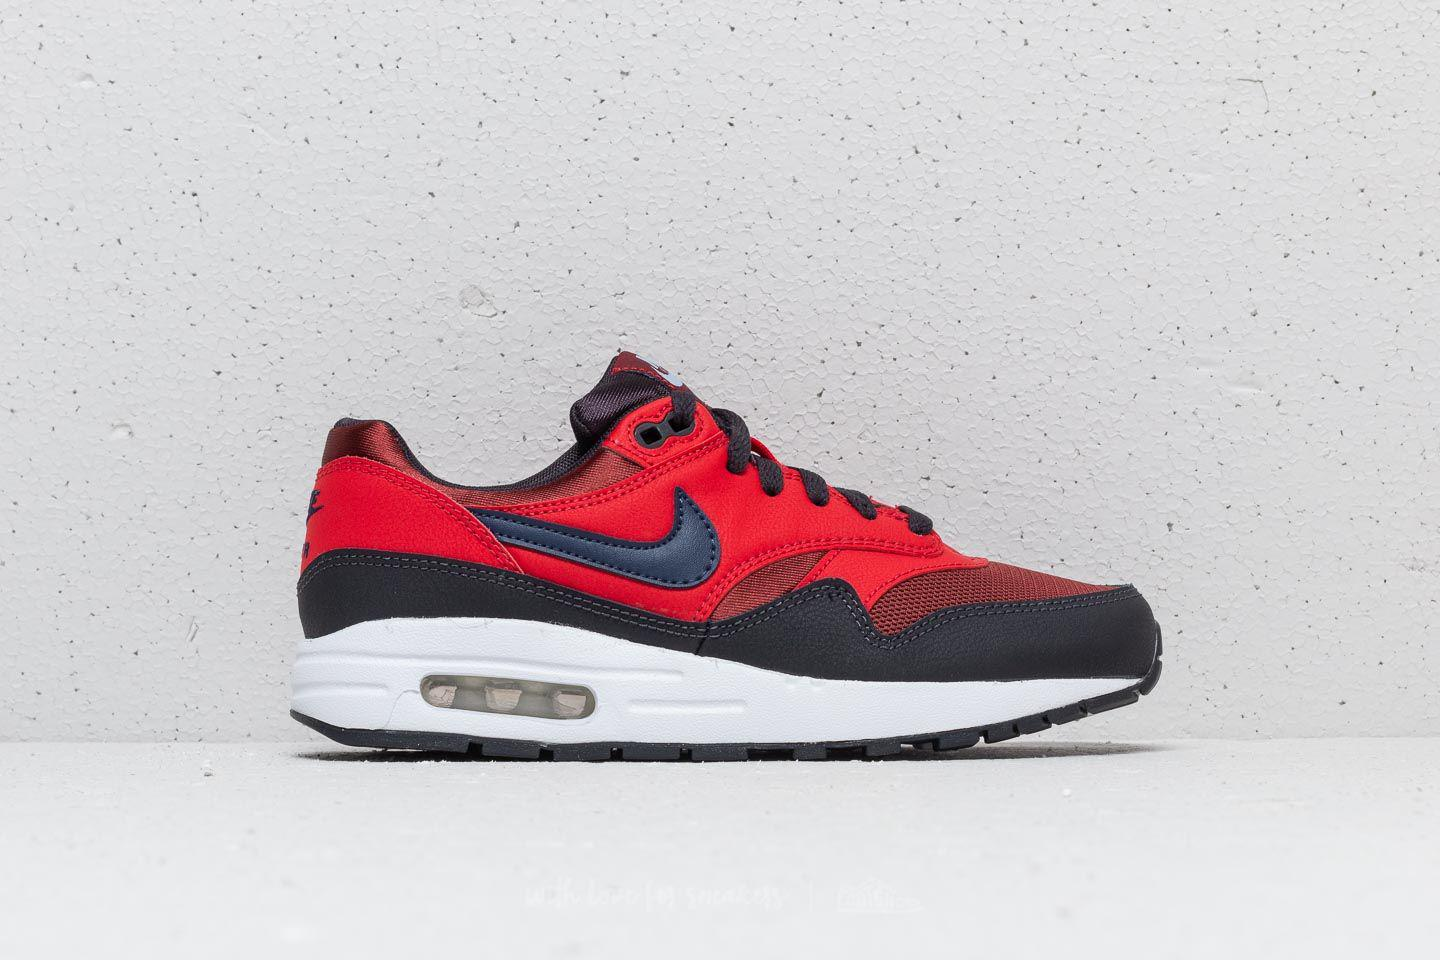 check out af2de 069c9 Nike Air Max 1 (gs) Rough Red  Midnight Navy in Red - Lyst